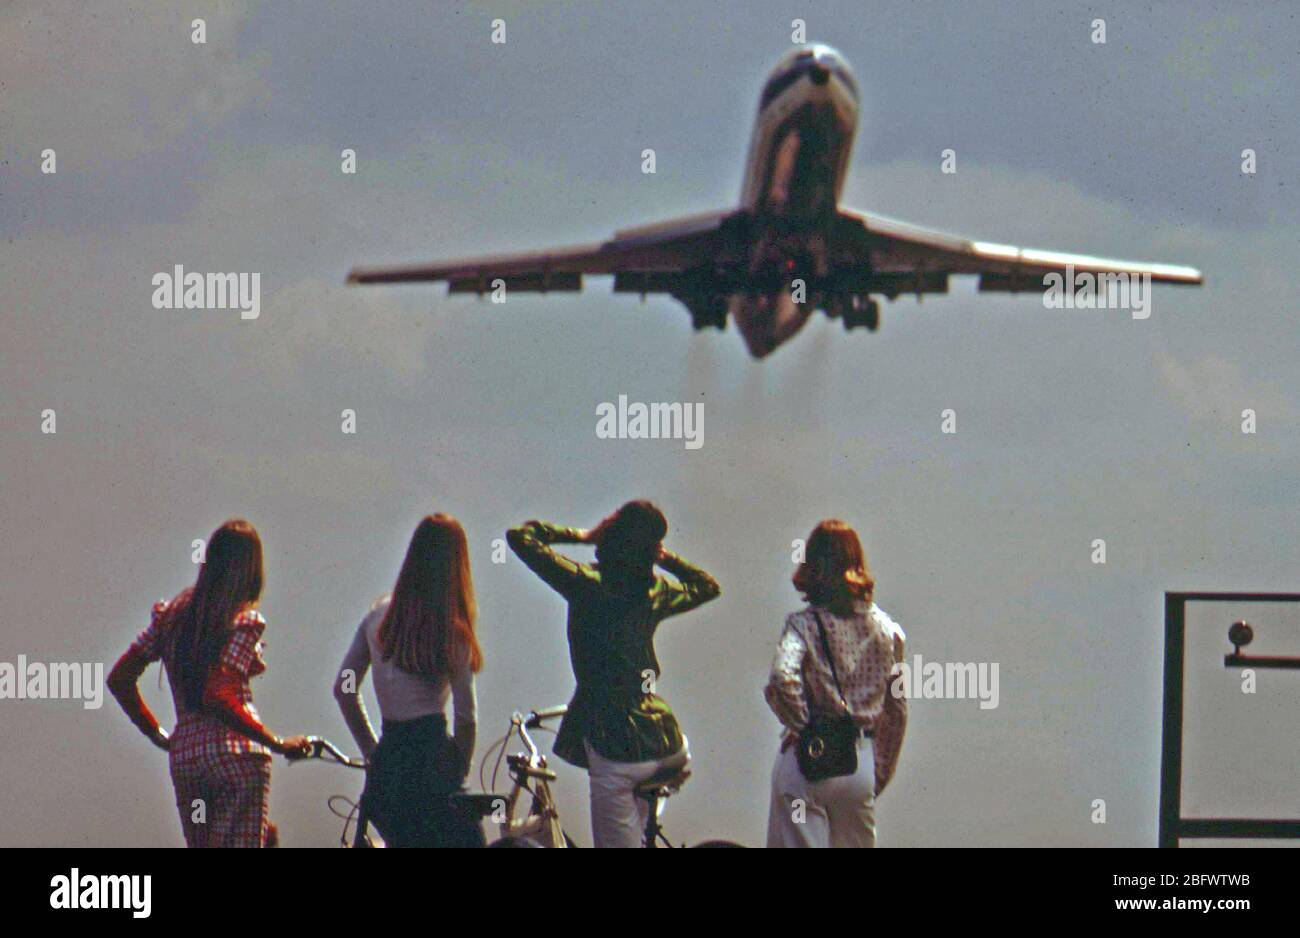 Clipart: A Guy Checks Out The View From An Airplane on a Solid Dark Gr –  Clipart Cartoons By VectorToons